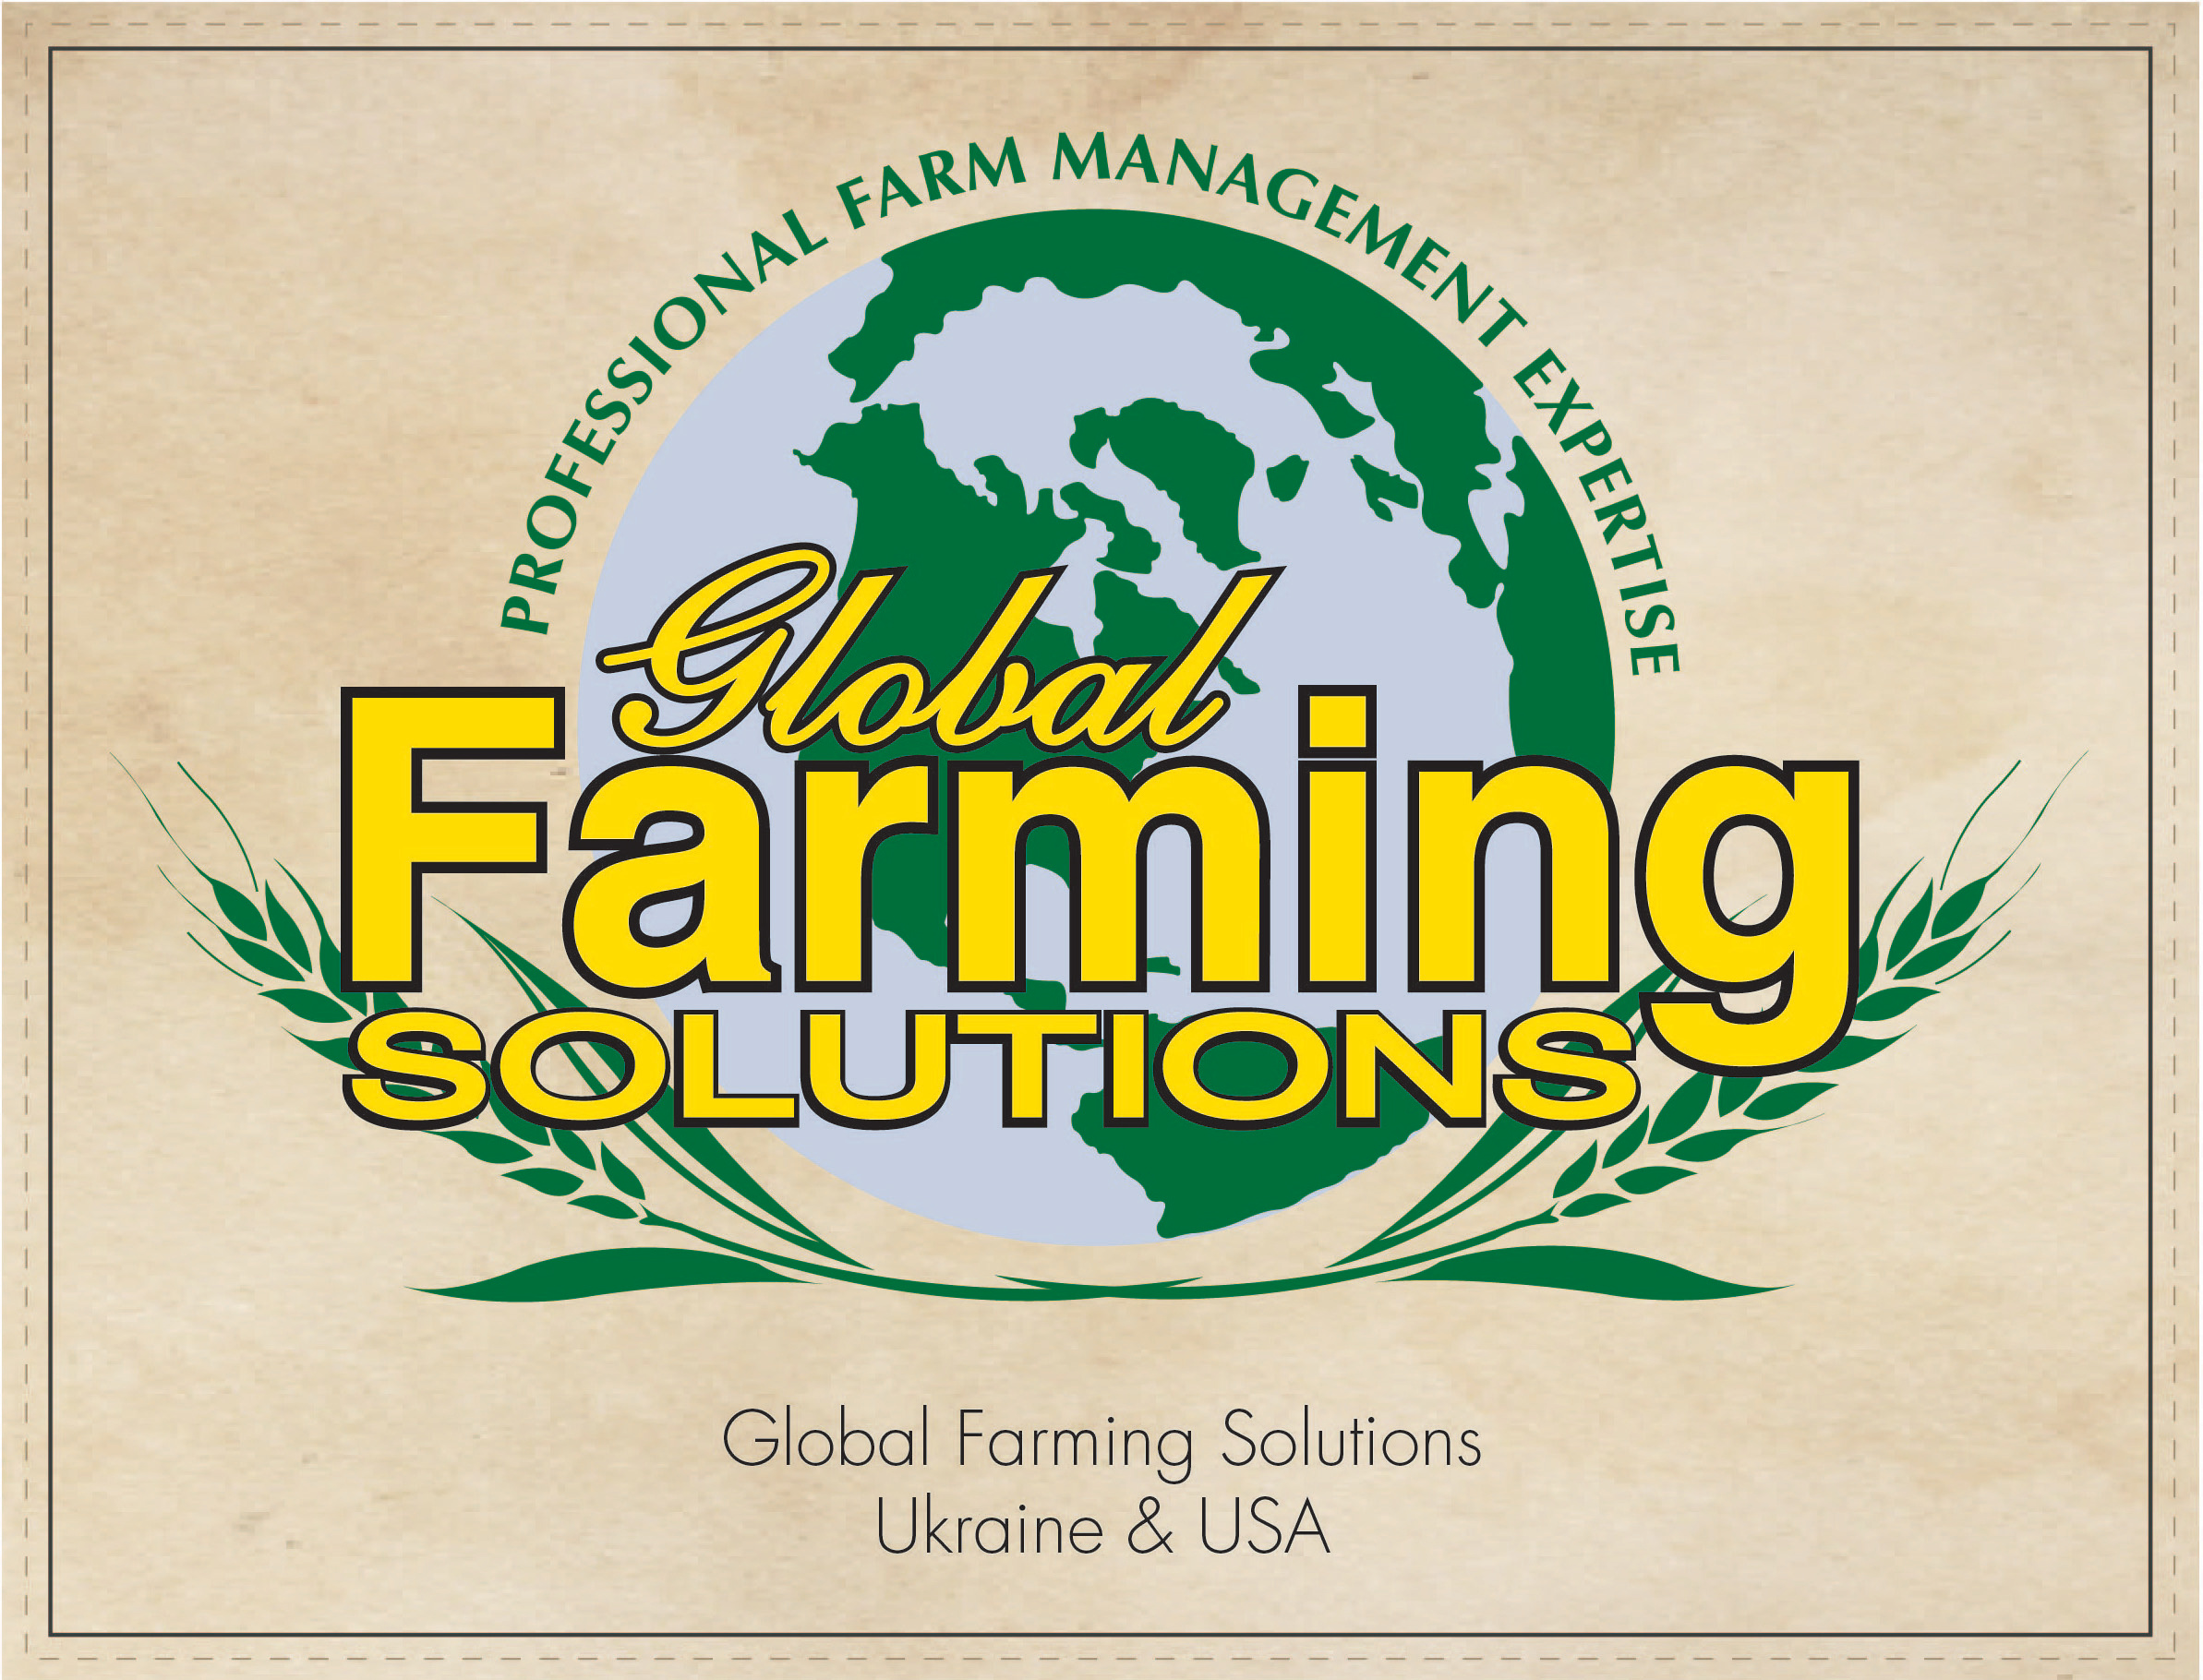 Global Farming Solutions